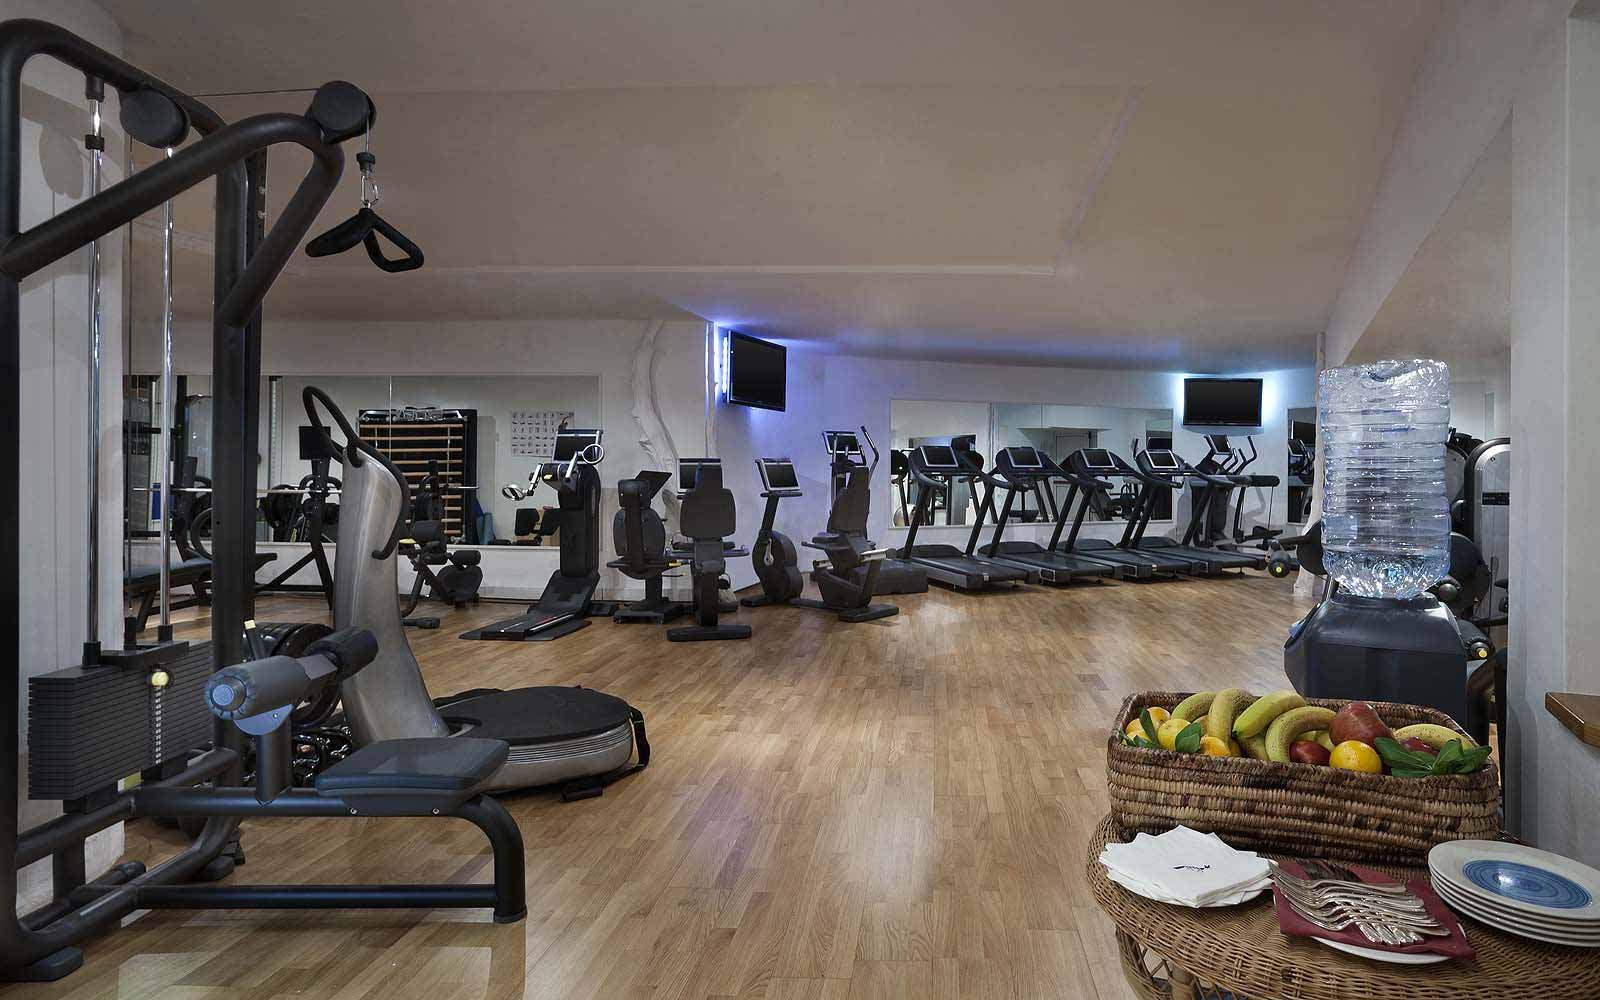 Fitness Centre at the Hotel Cala di Volpe